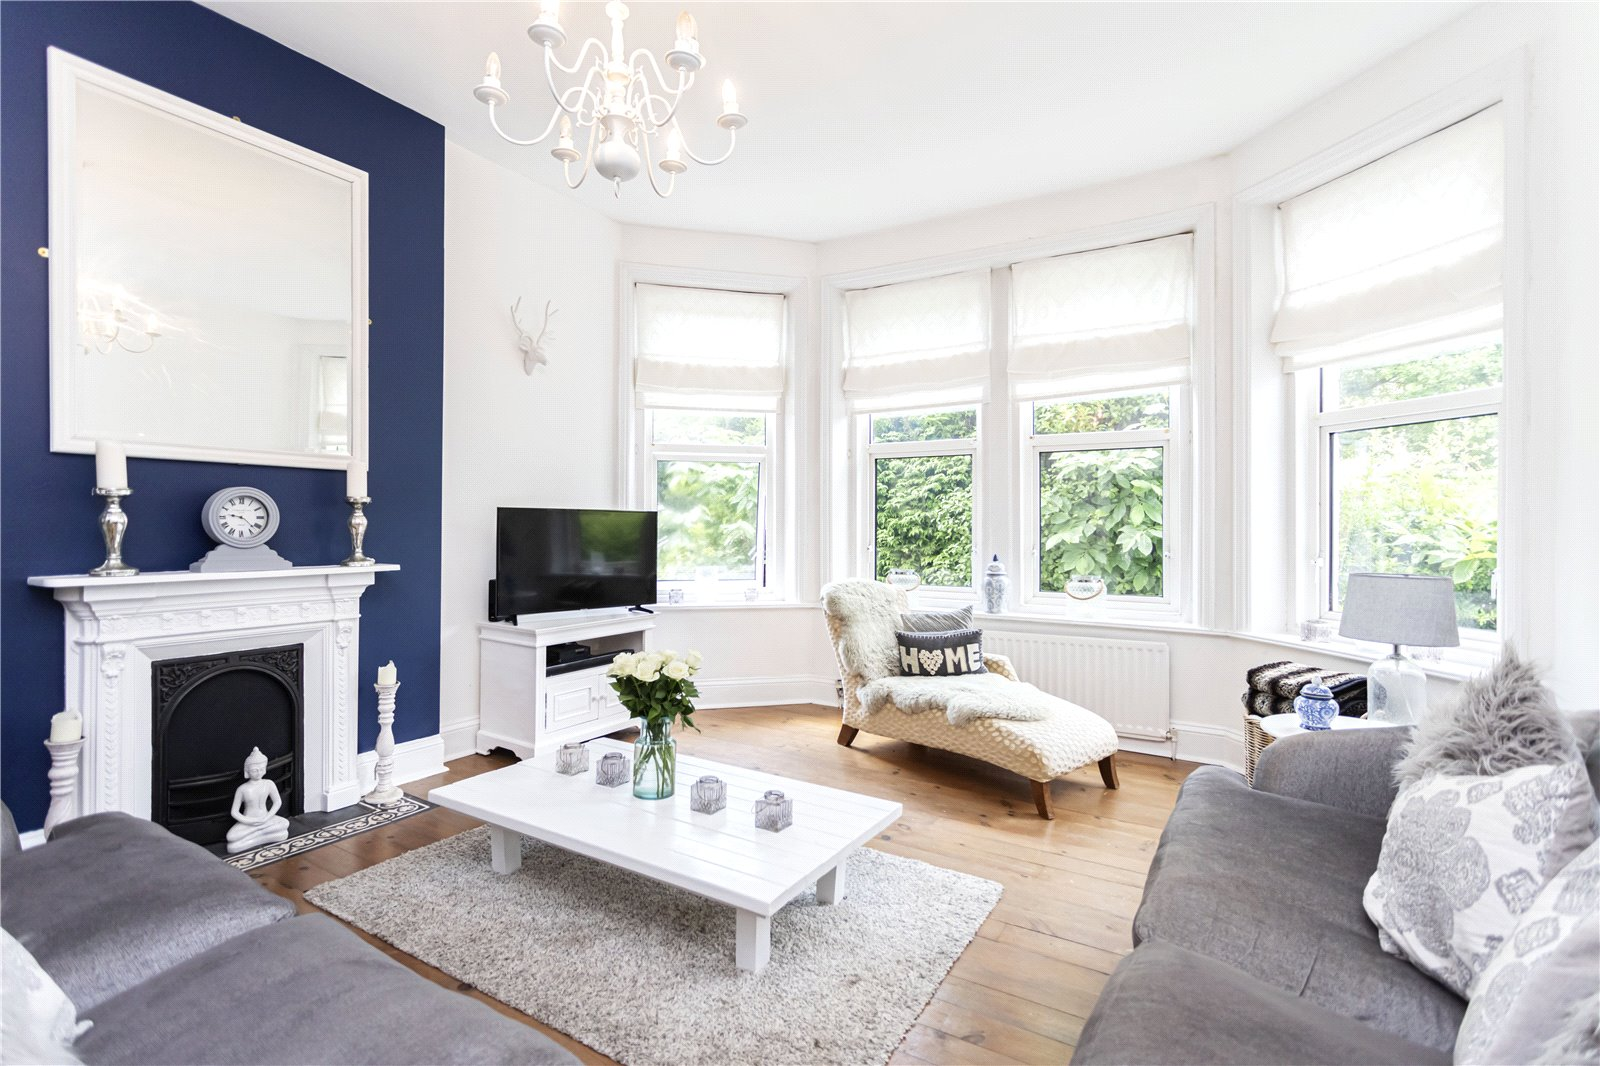 2 bed apartment for sale in Pine Tree Glen, Westbourne, BH4